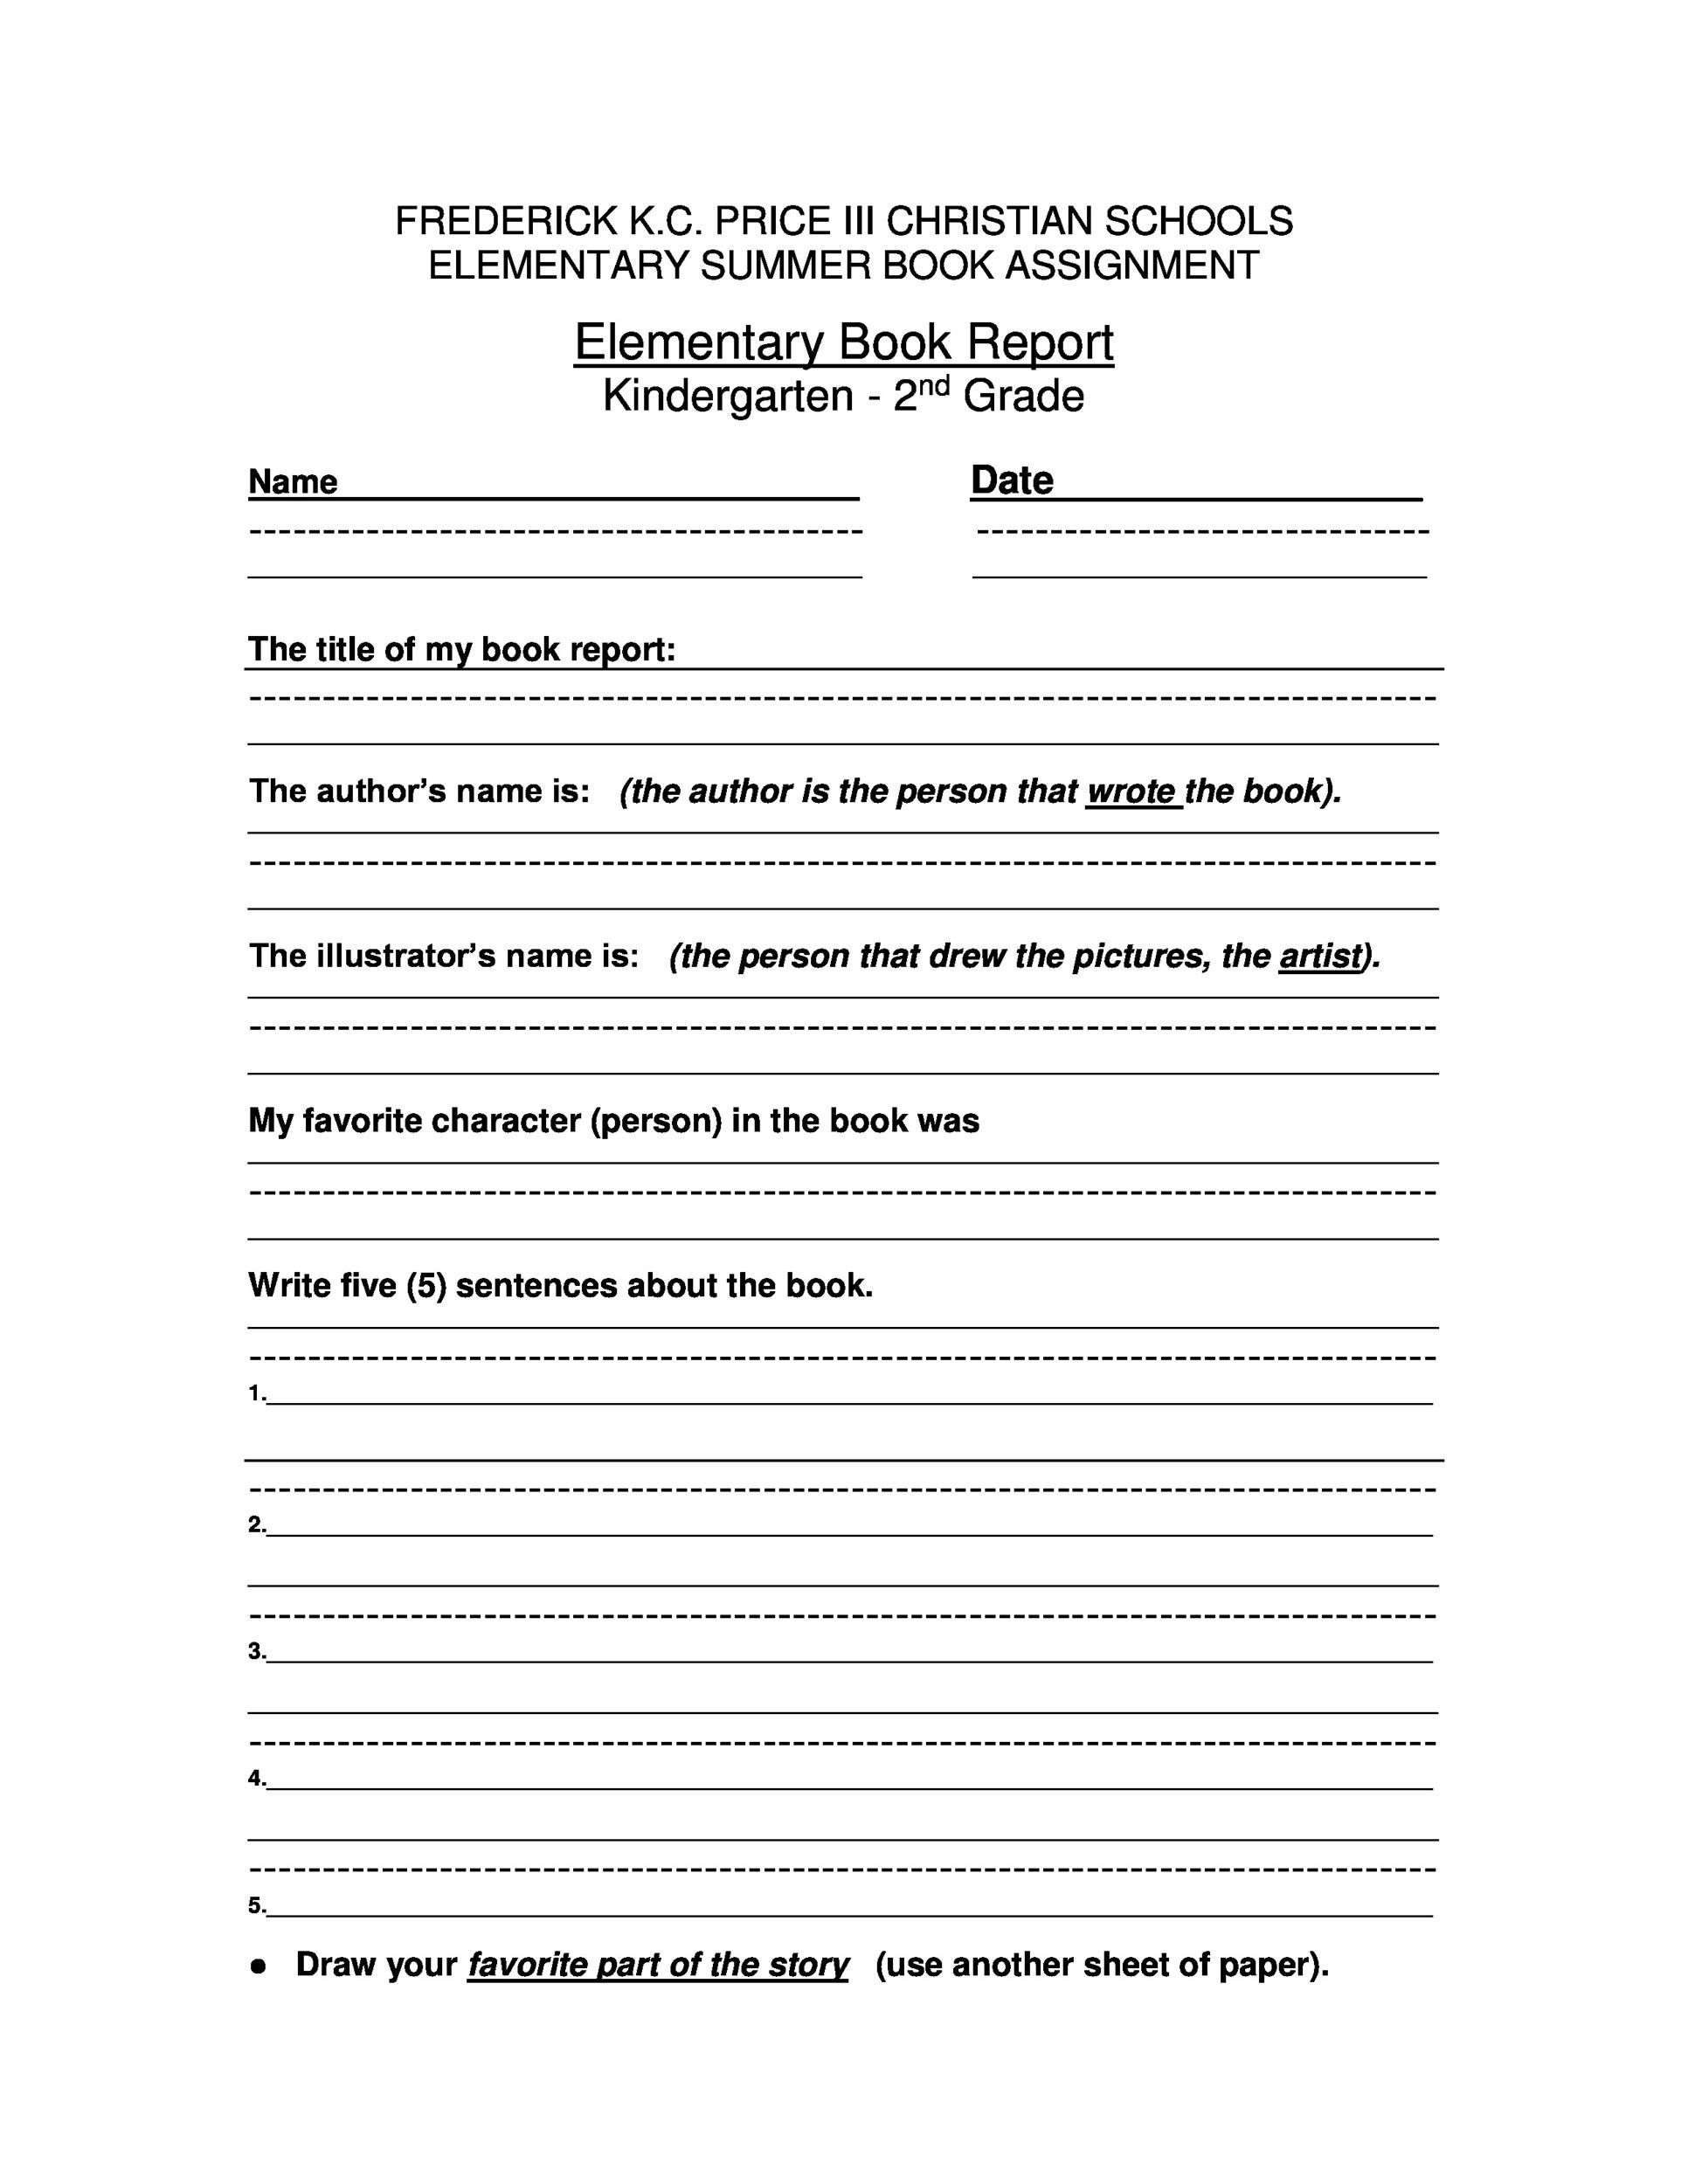 005 Magnificent 6th Grade Book Report Template Image  Sixth Format Printable Middle SchoolFull